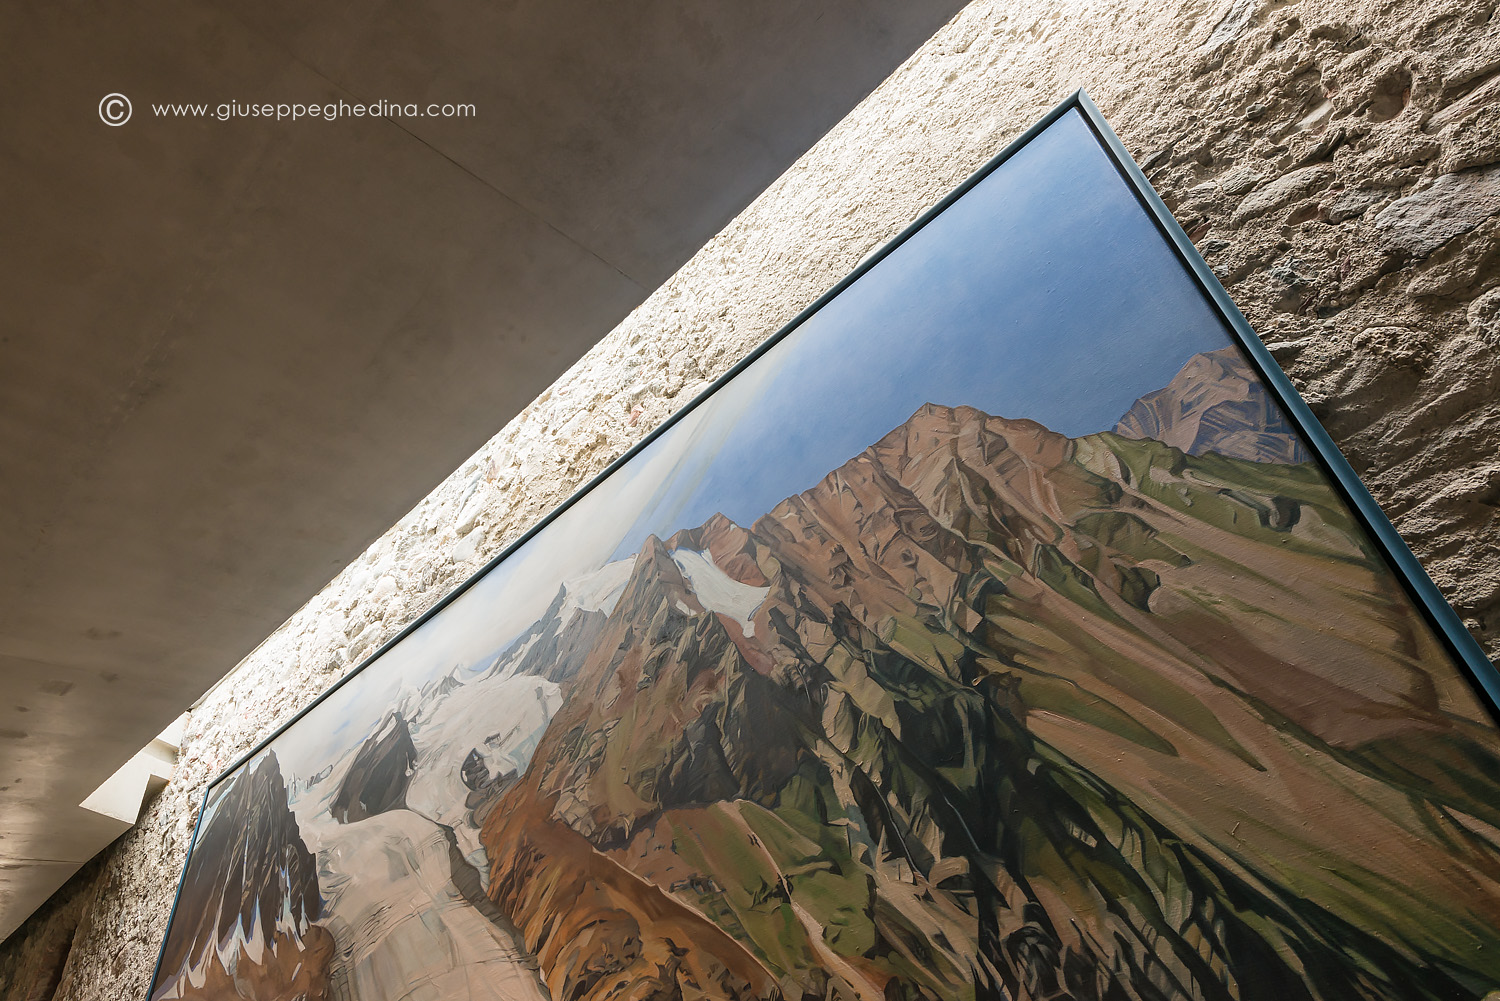 20140402_066_photo_giuseppe_ghedina_messner_mountiam_museum_ripa.jpg